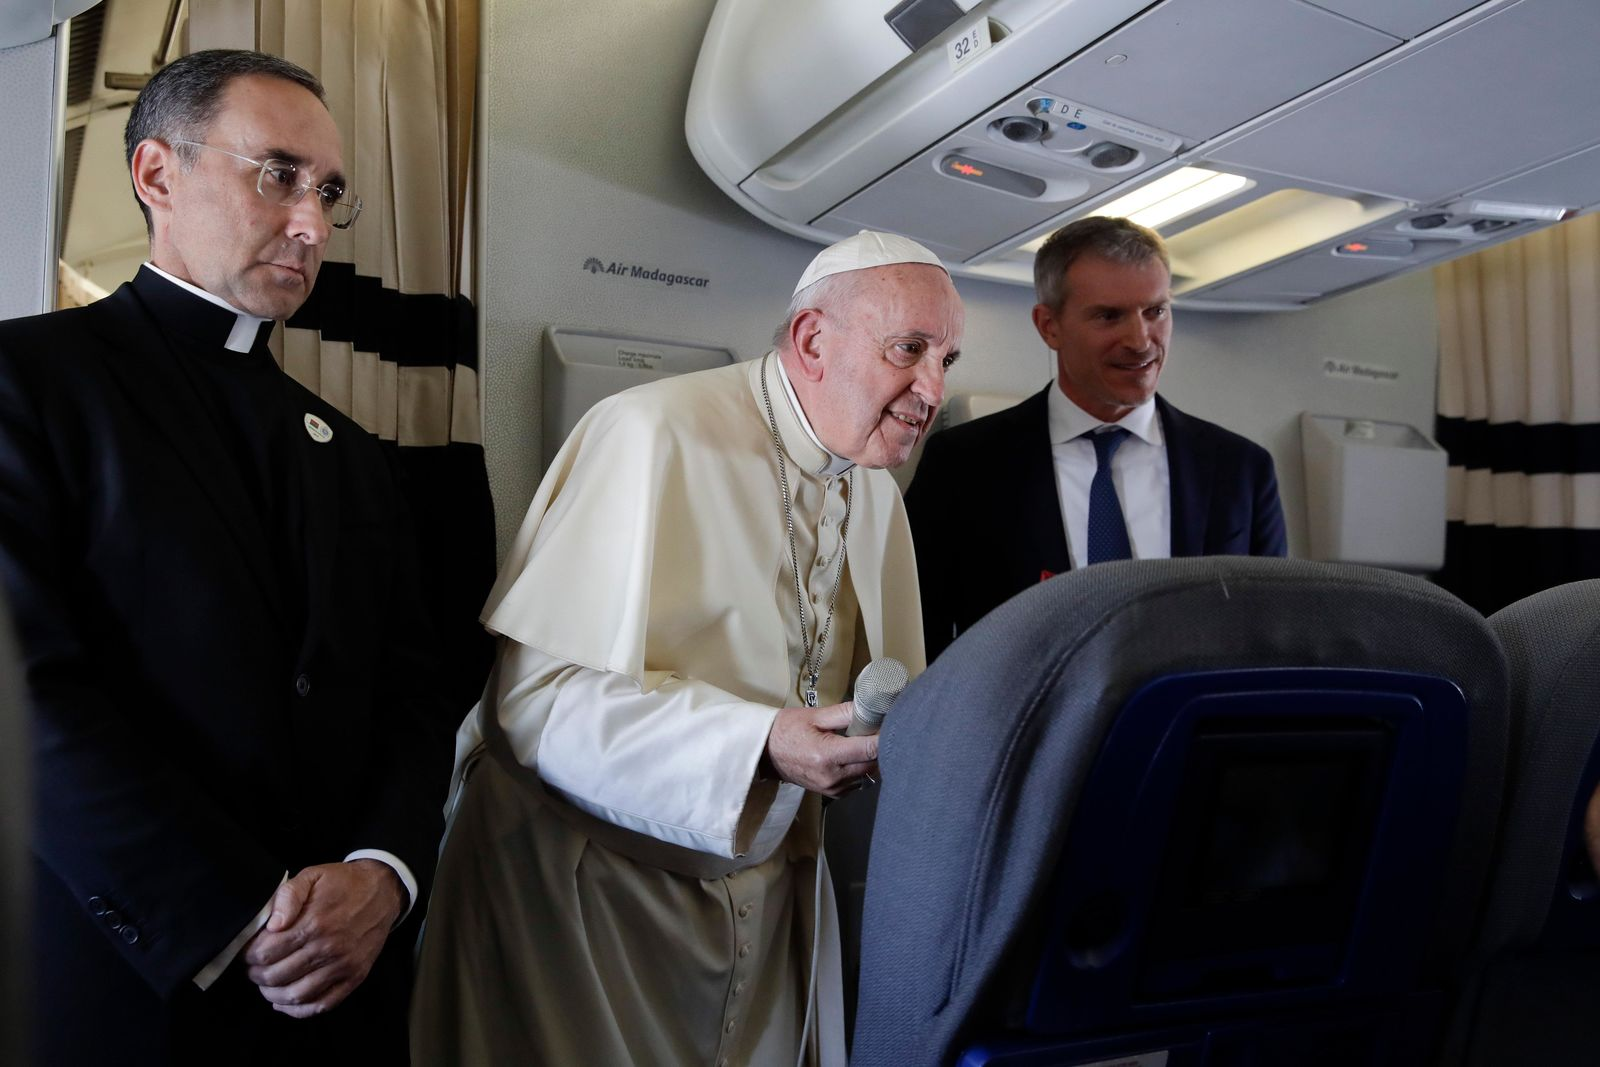 Pope Francis is flanked by his spokesperson Matteo Bruni, right, and Pope's trip organizer father Mauricio Rueda as he addresses journalists during his flight from Antamanarivo to Rome, Tuesday, Sept. 10, 2019, after his seven-day pastoral trip to Mozambique, Madagascar, and Mauritius. (AP Photo/Alessandra Tarantino)